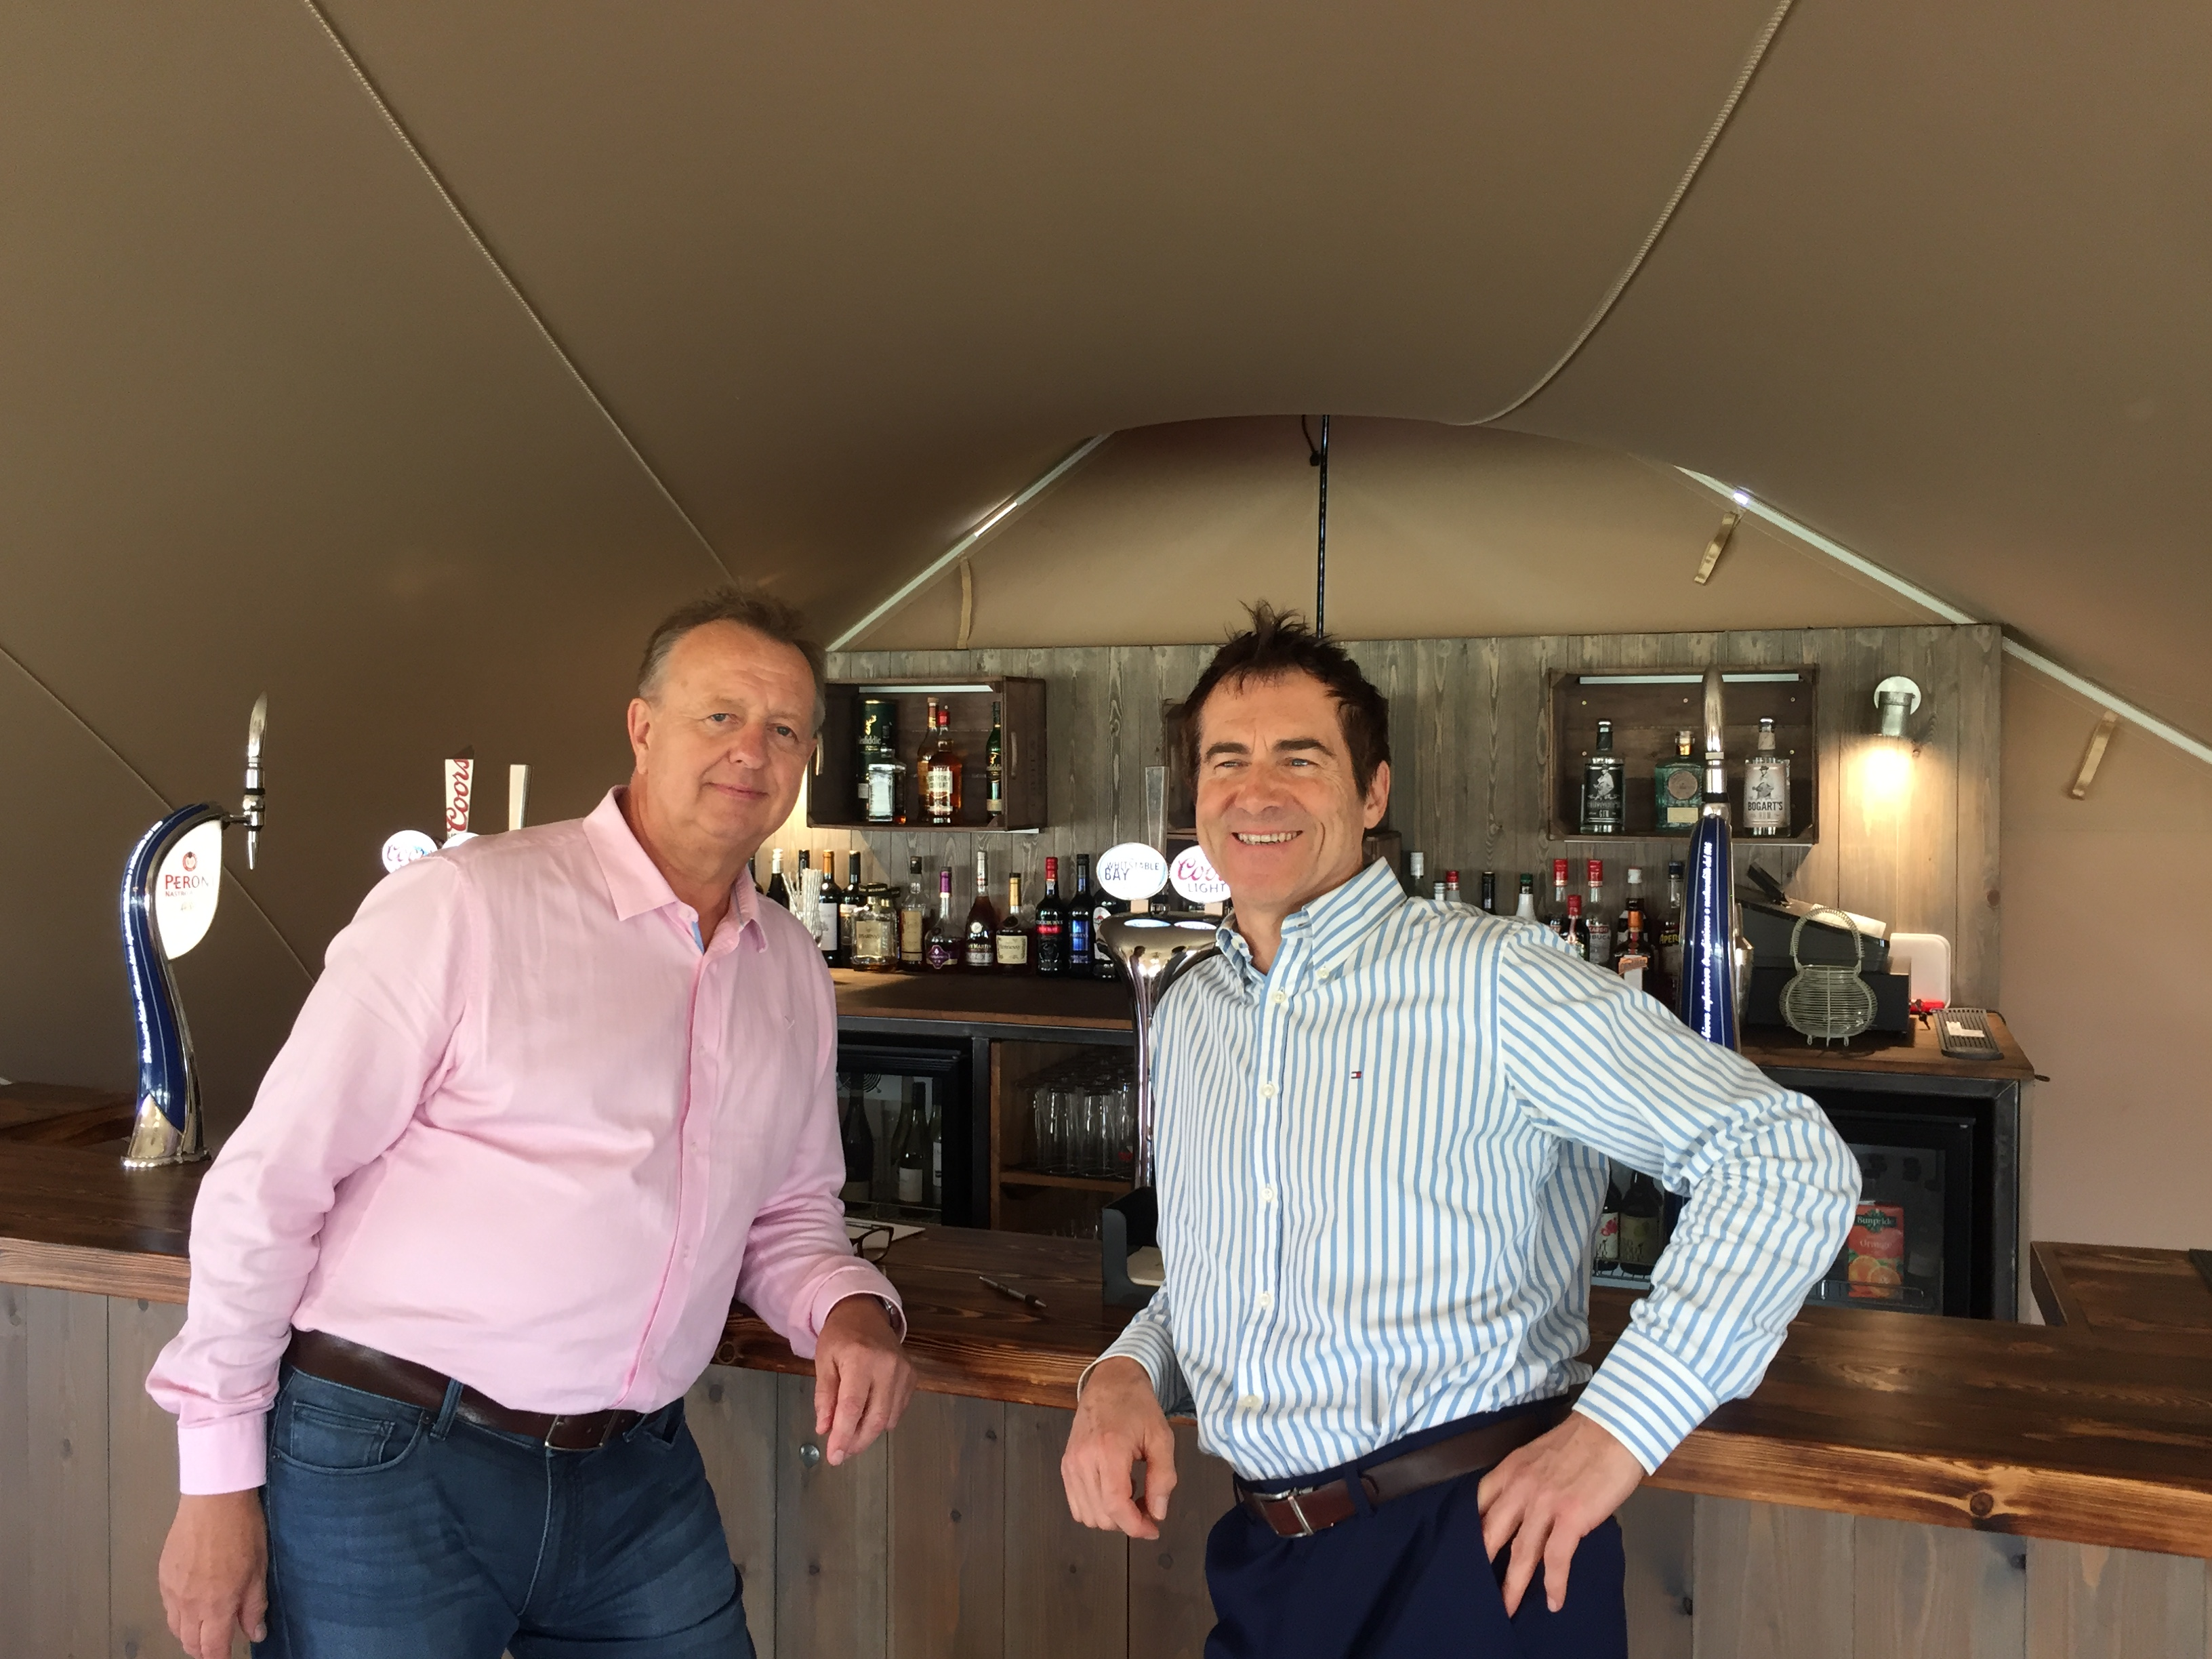 Tony Aram & Marcus kilvington, The Food Profit Formula for Pubs